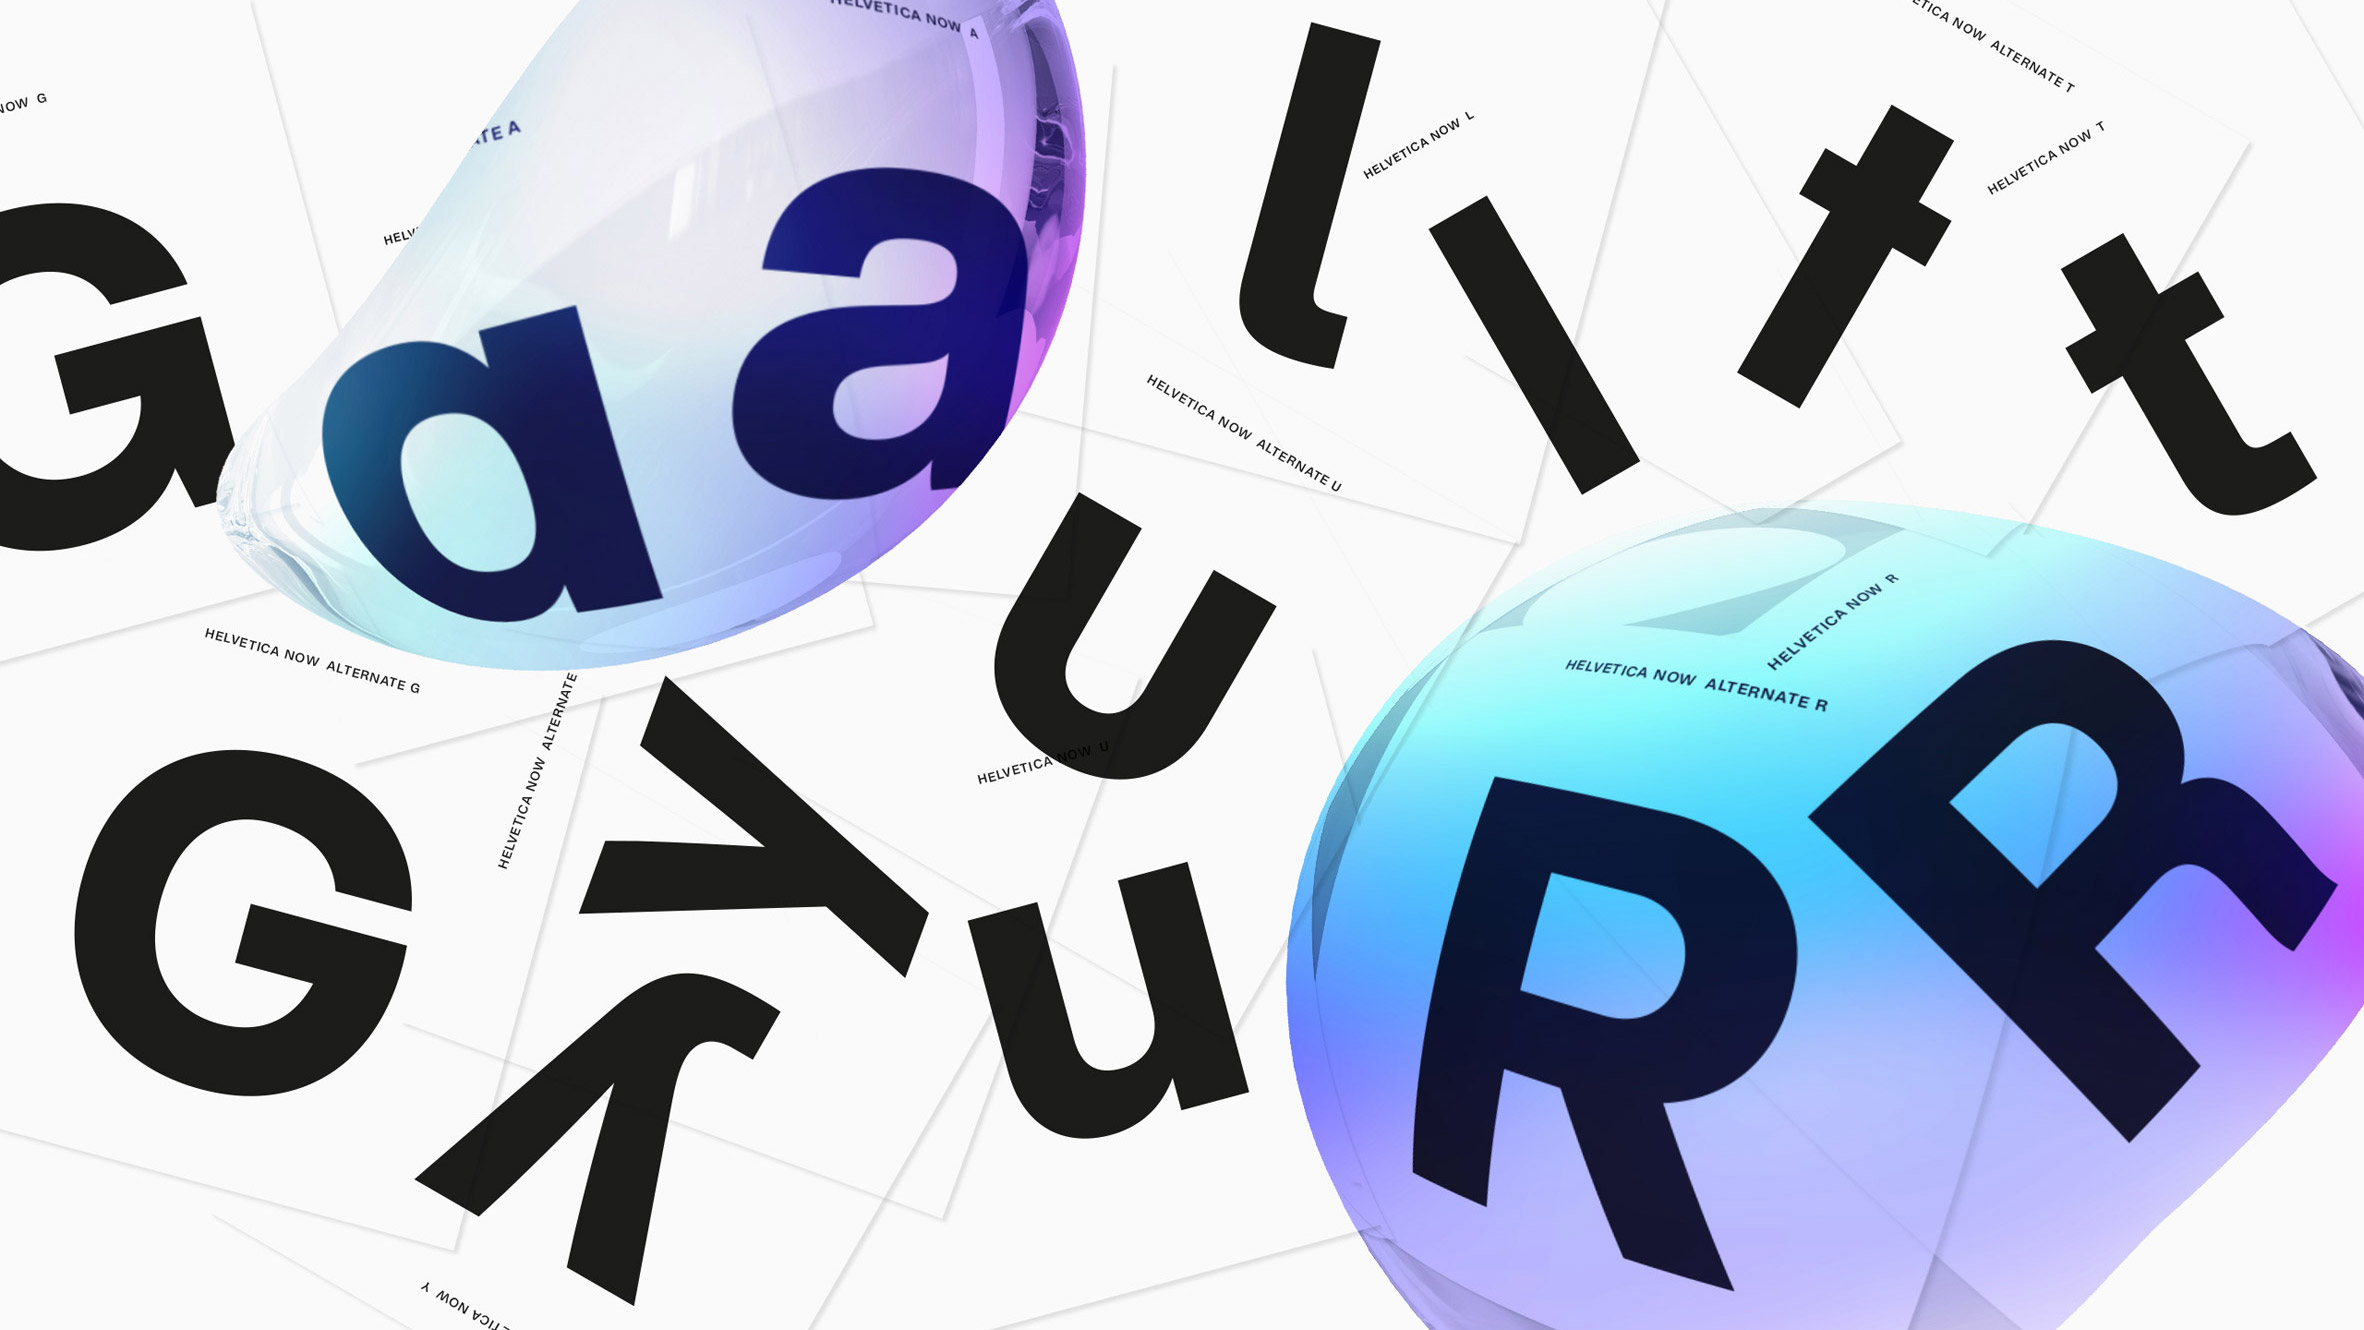 Monotype redesigns Helvetica font for digital age